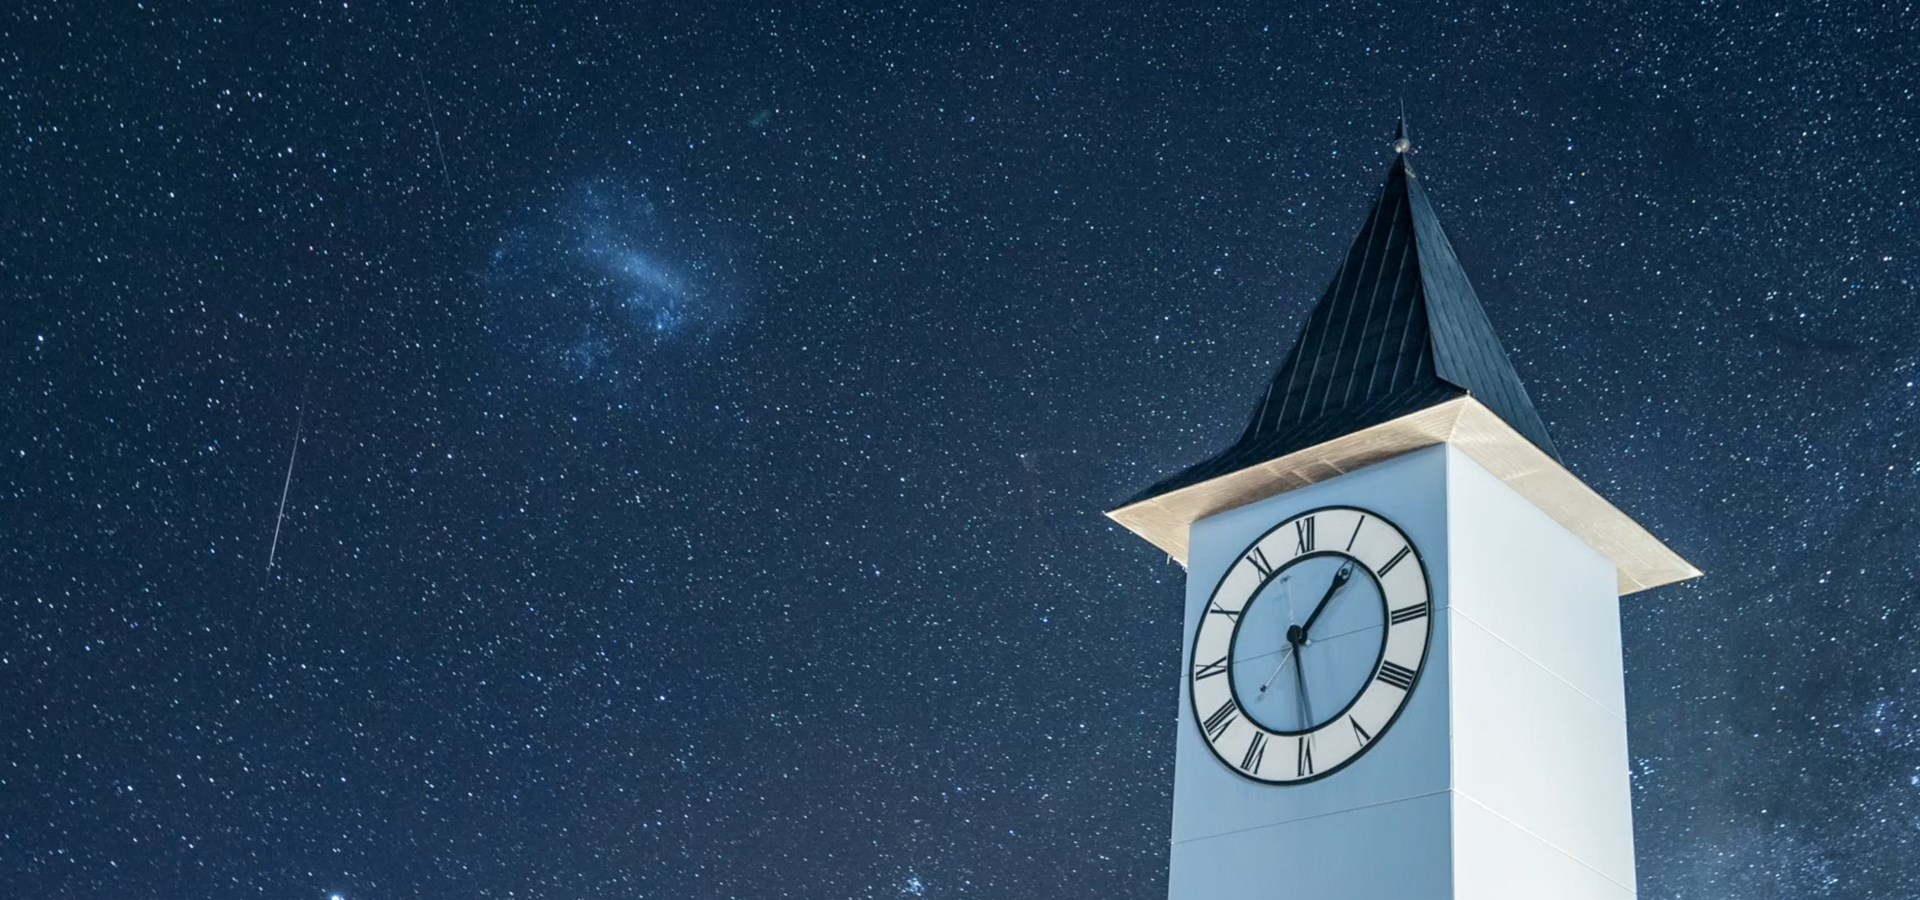 Cardrona Alpine Resort New Zealand Clock tower stargazing